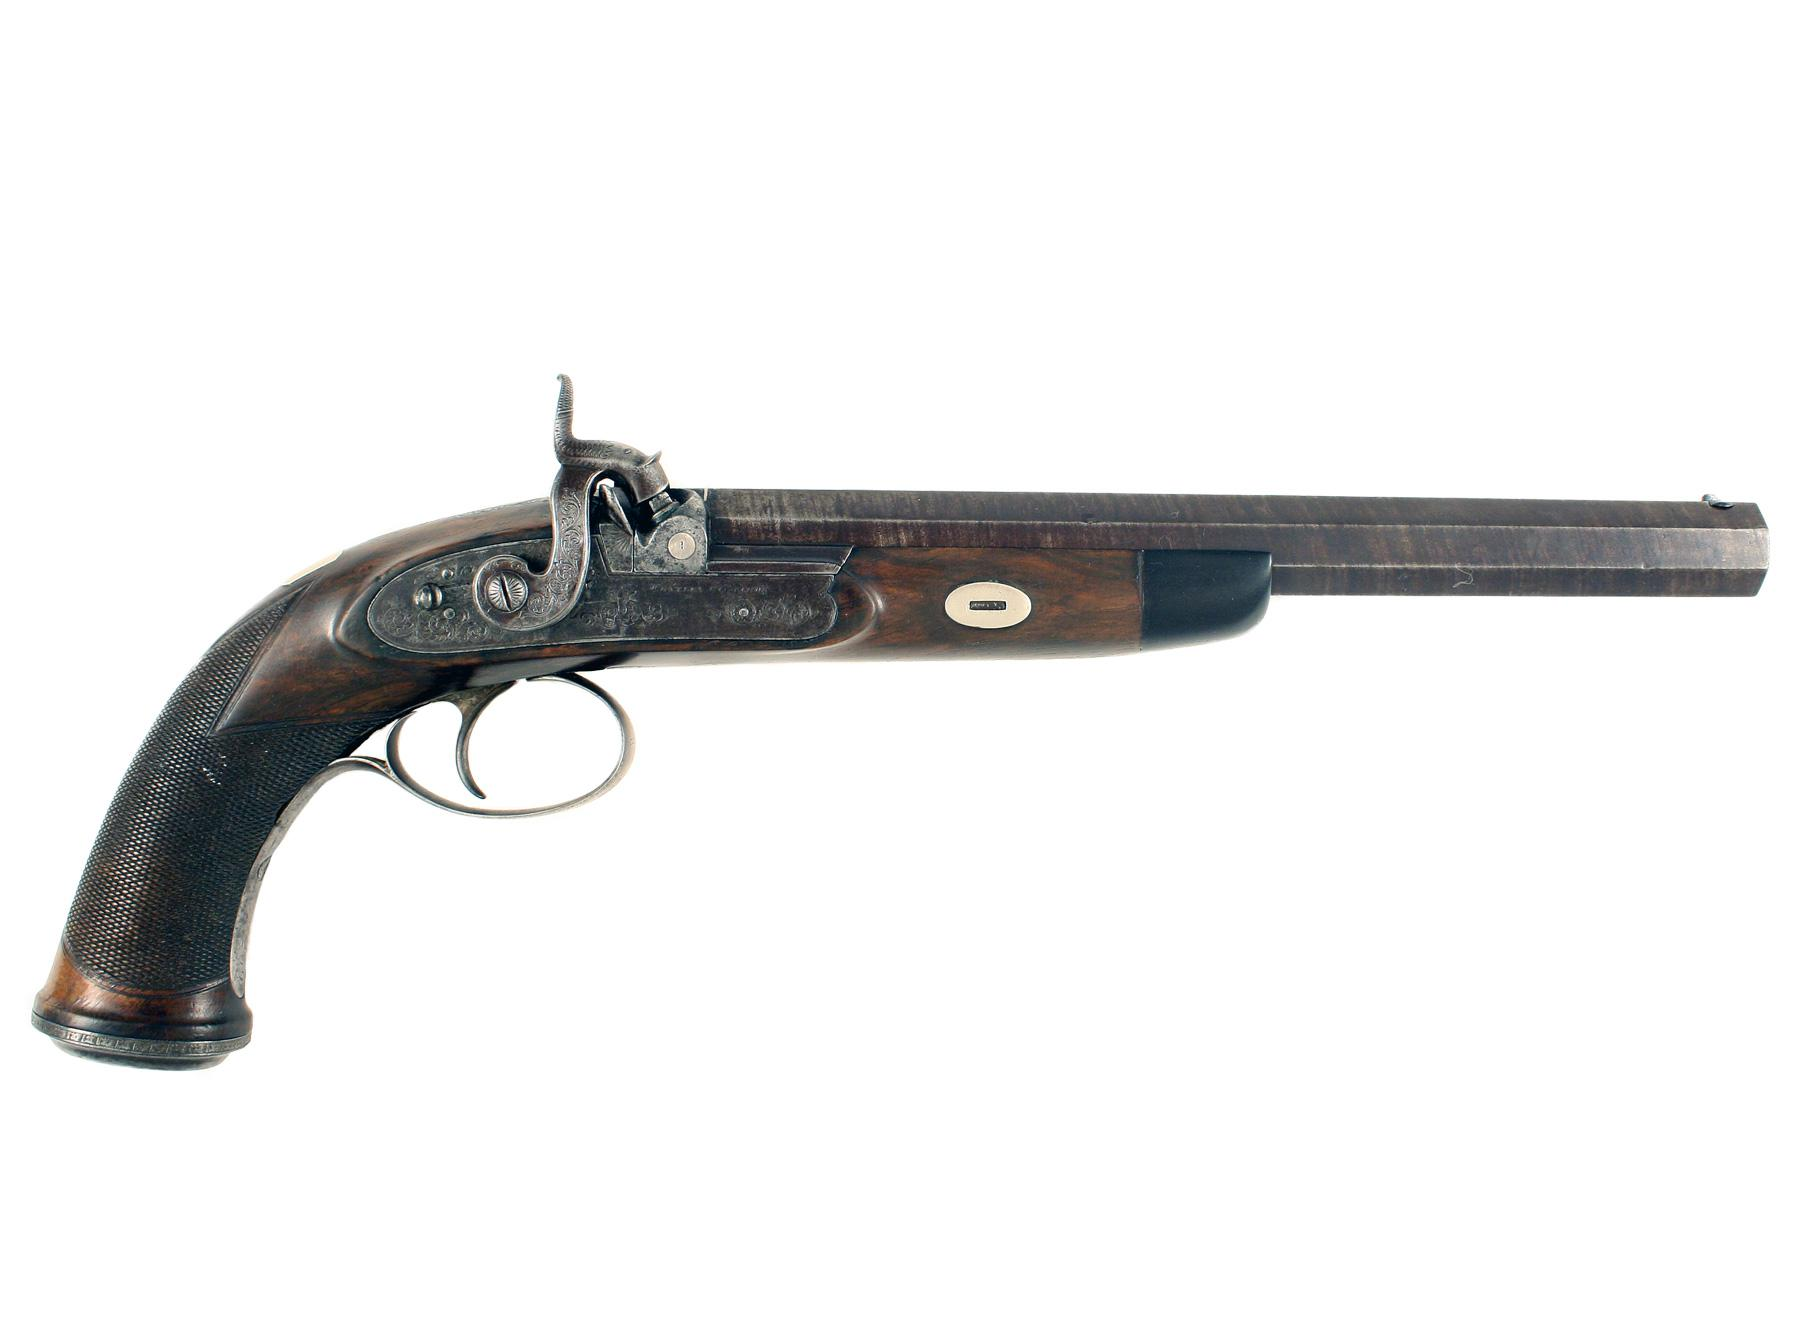 A Westley Richards Percussion Target Pistol